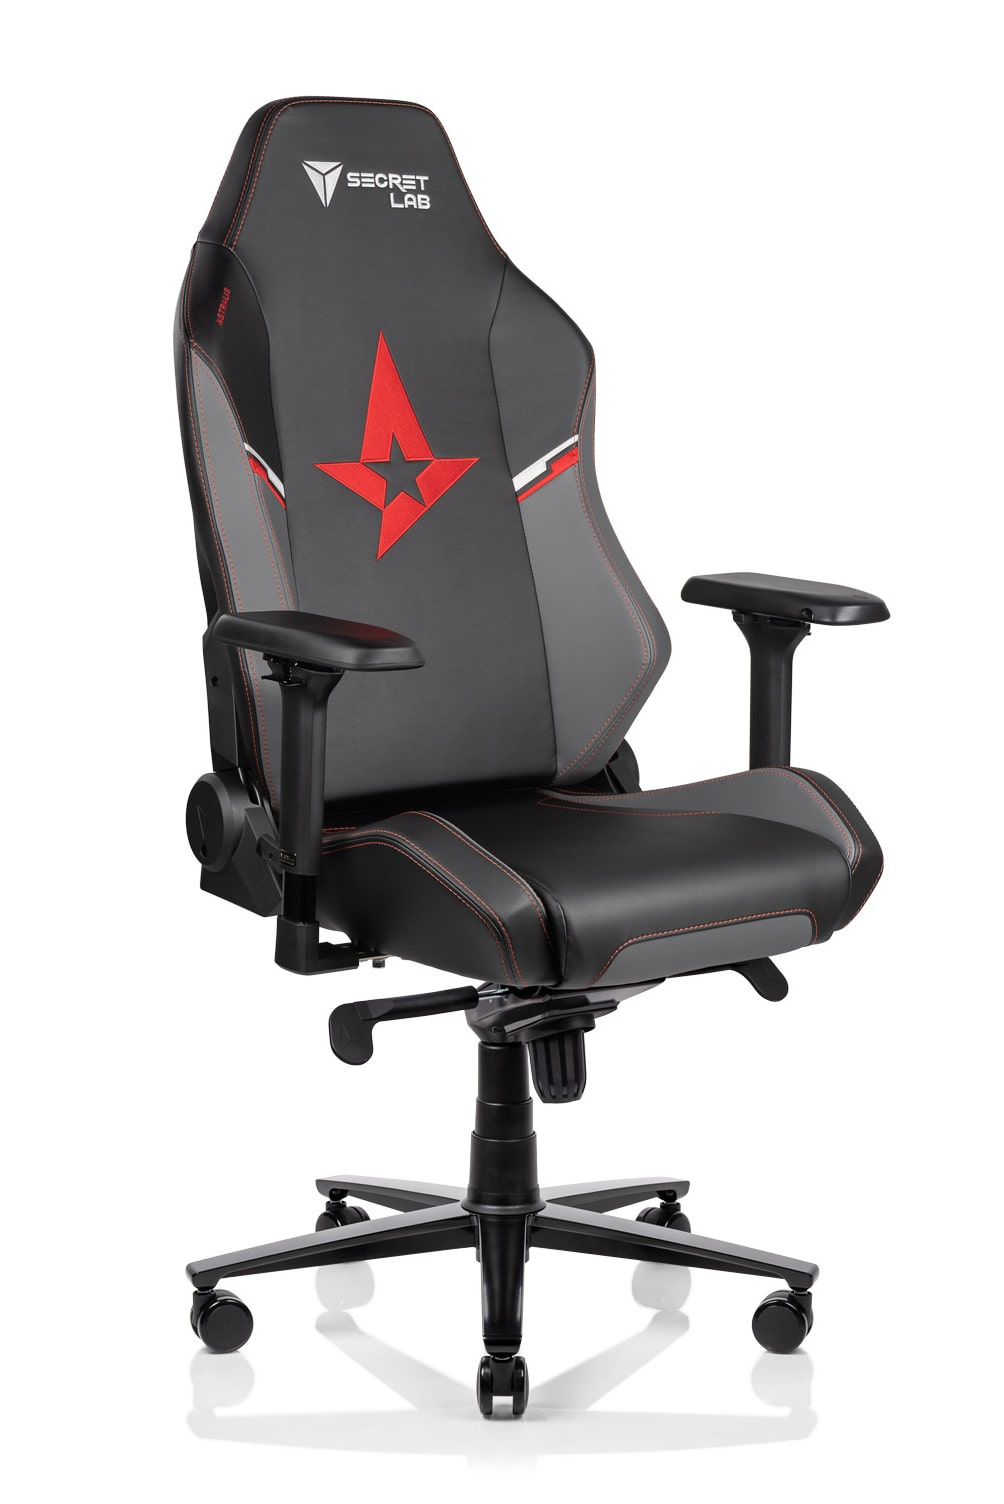 Secretlab OMEGA Series - Astralis Special Edition Gaming Chair